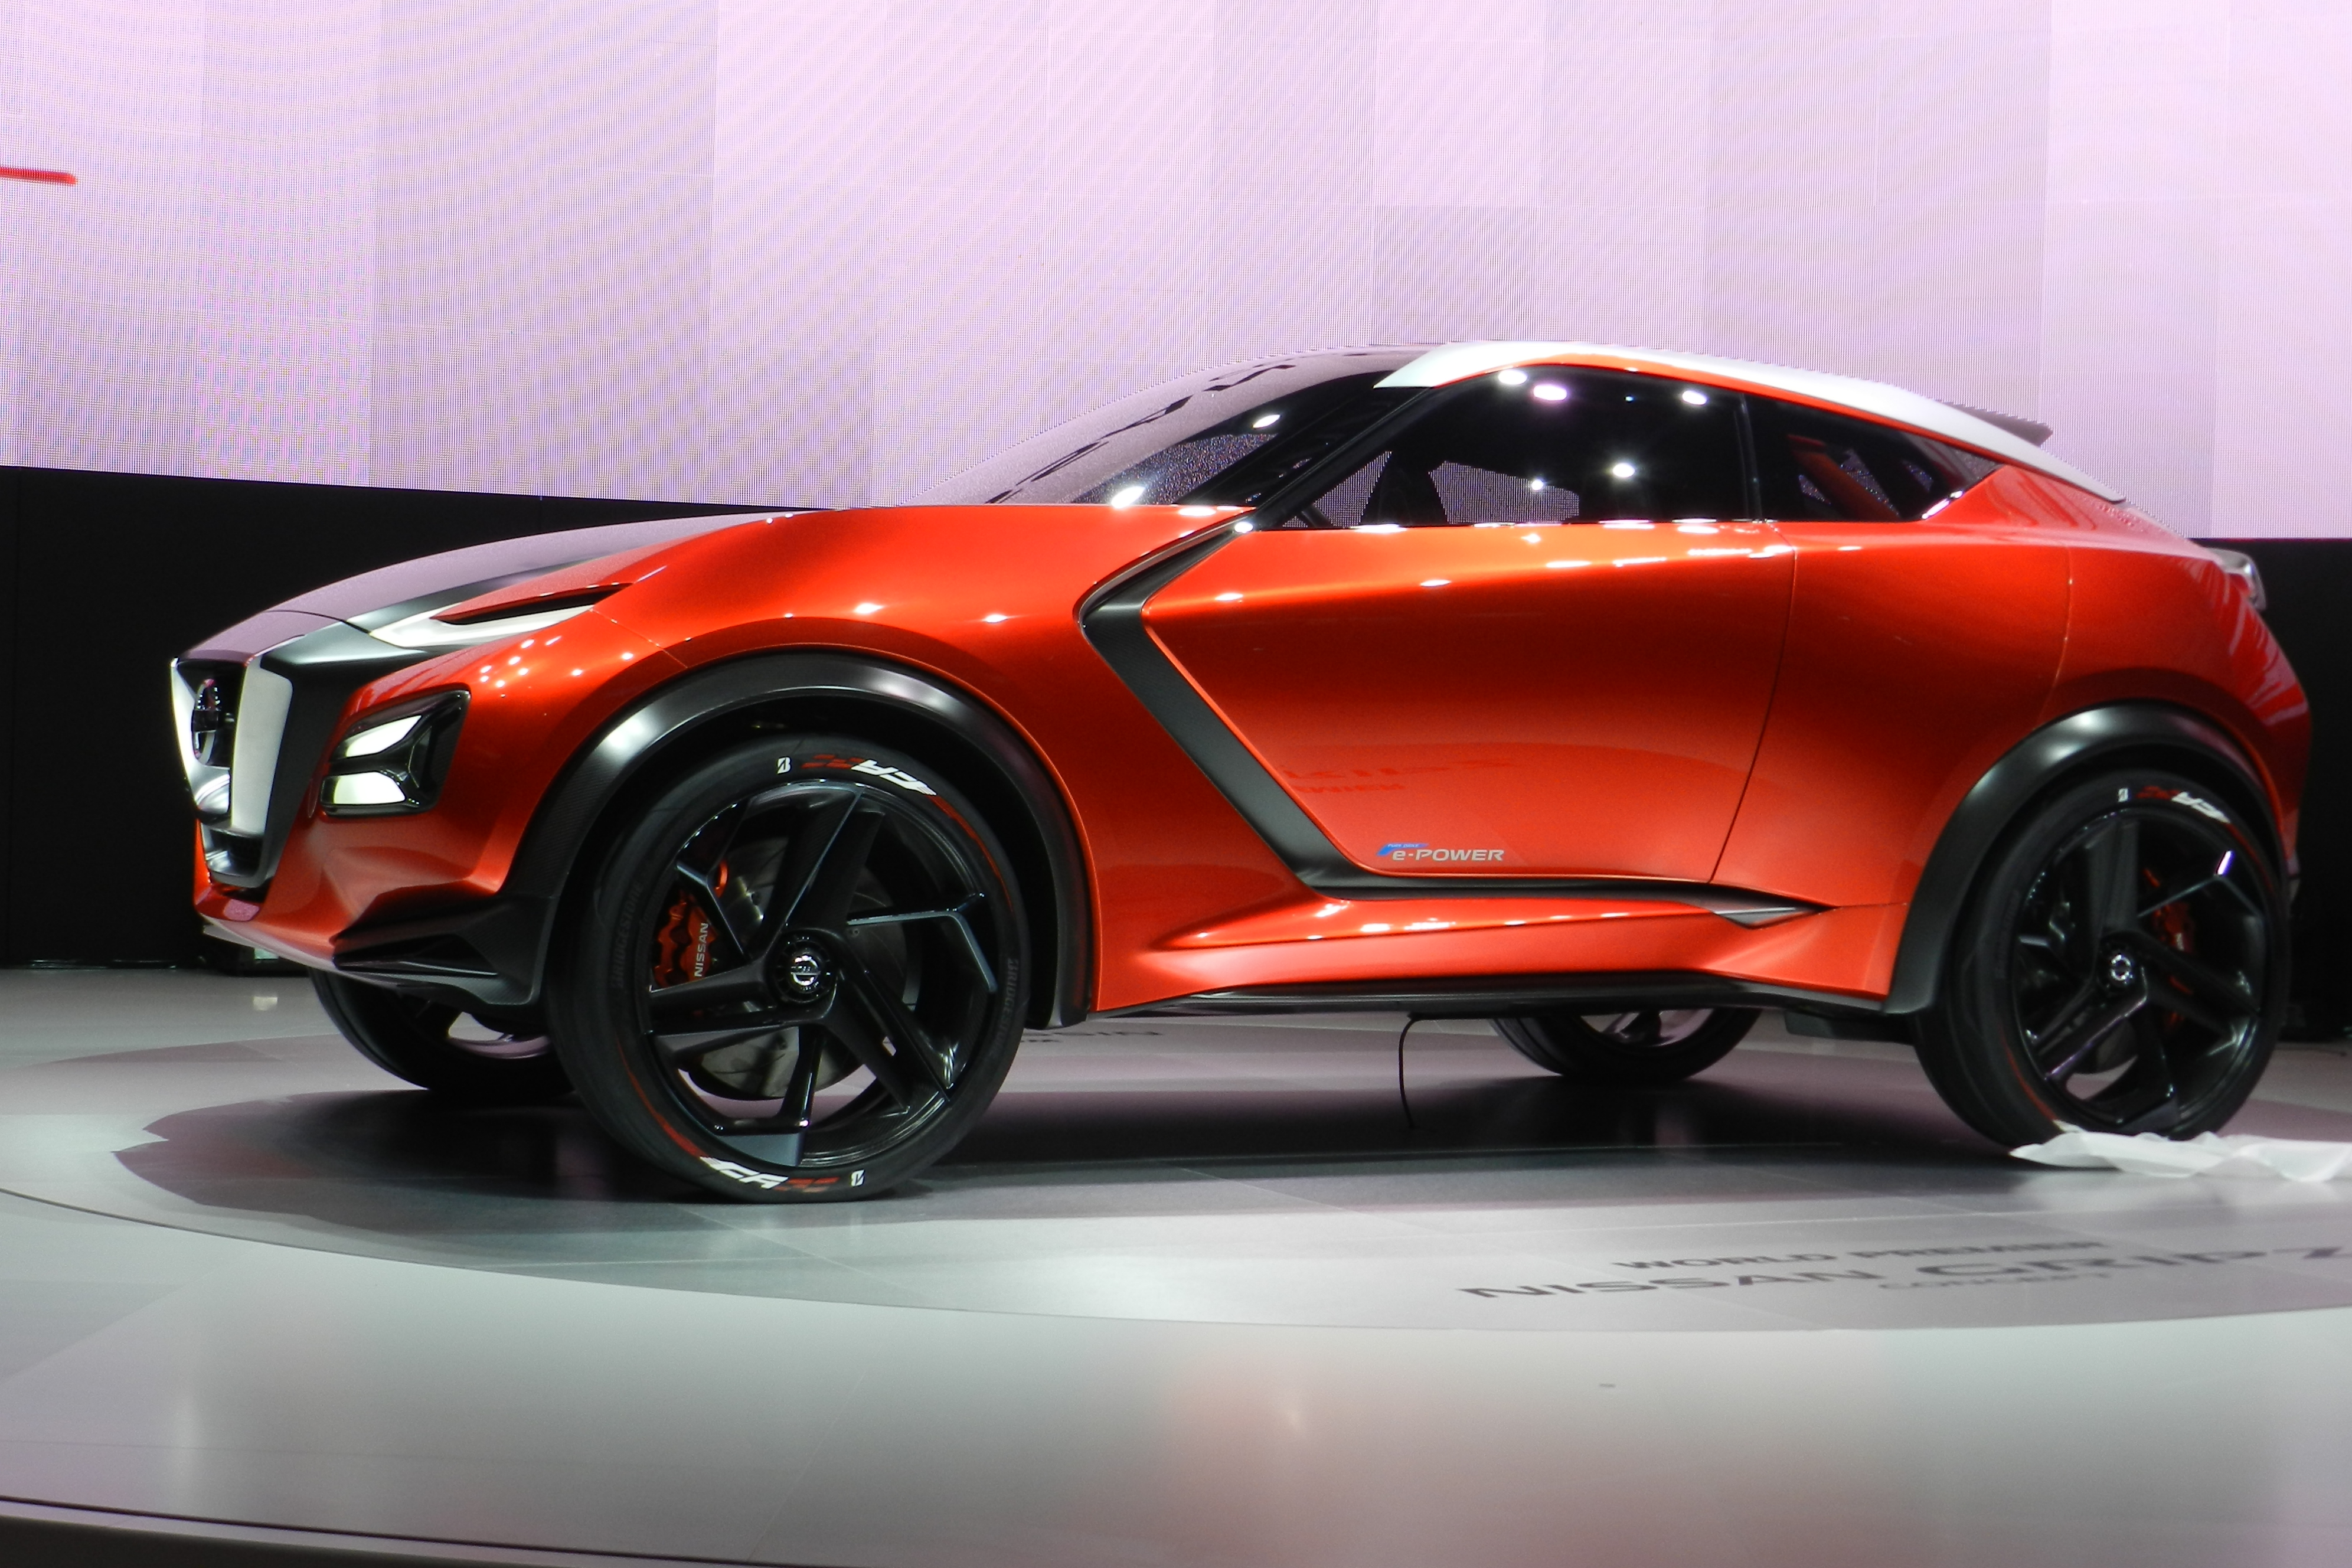 2017 nissan gripz new car release date and review 2018 amanda felicia. Black Bedroom Furniture Sets. Home Design Ideas